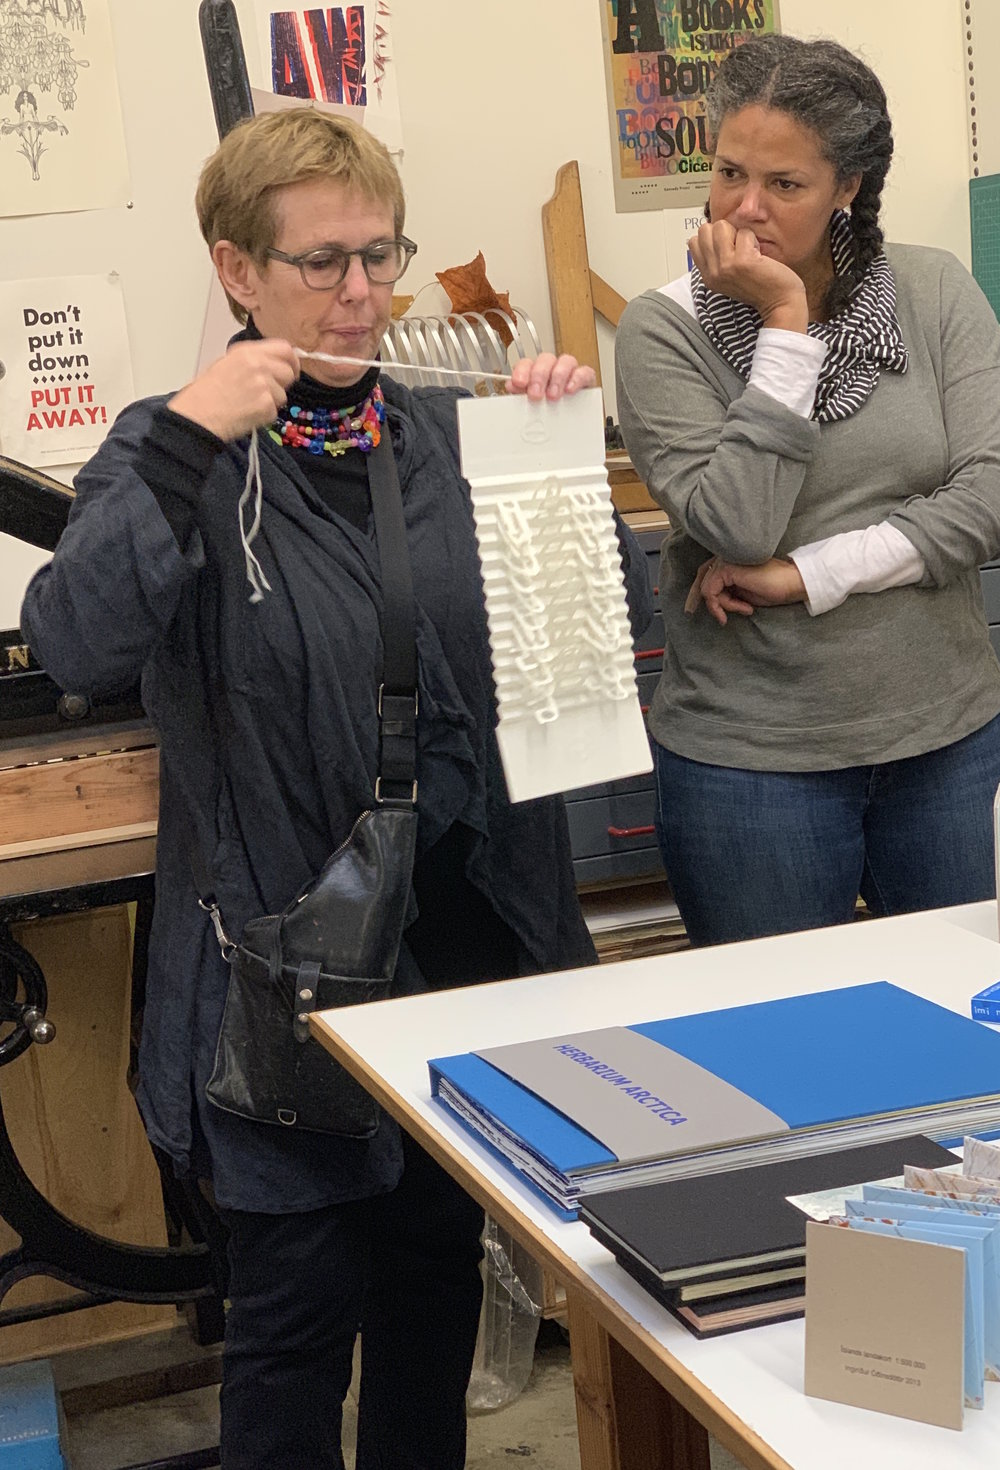 Helga Palina Bryjolfsdottir (Iceland) showing her artist book with Tiana Krahn looking on